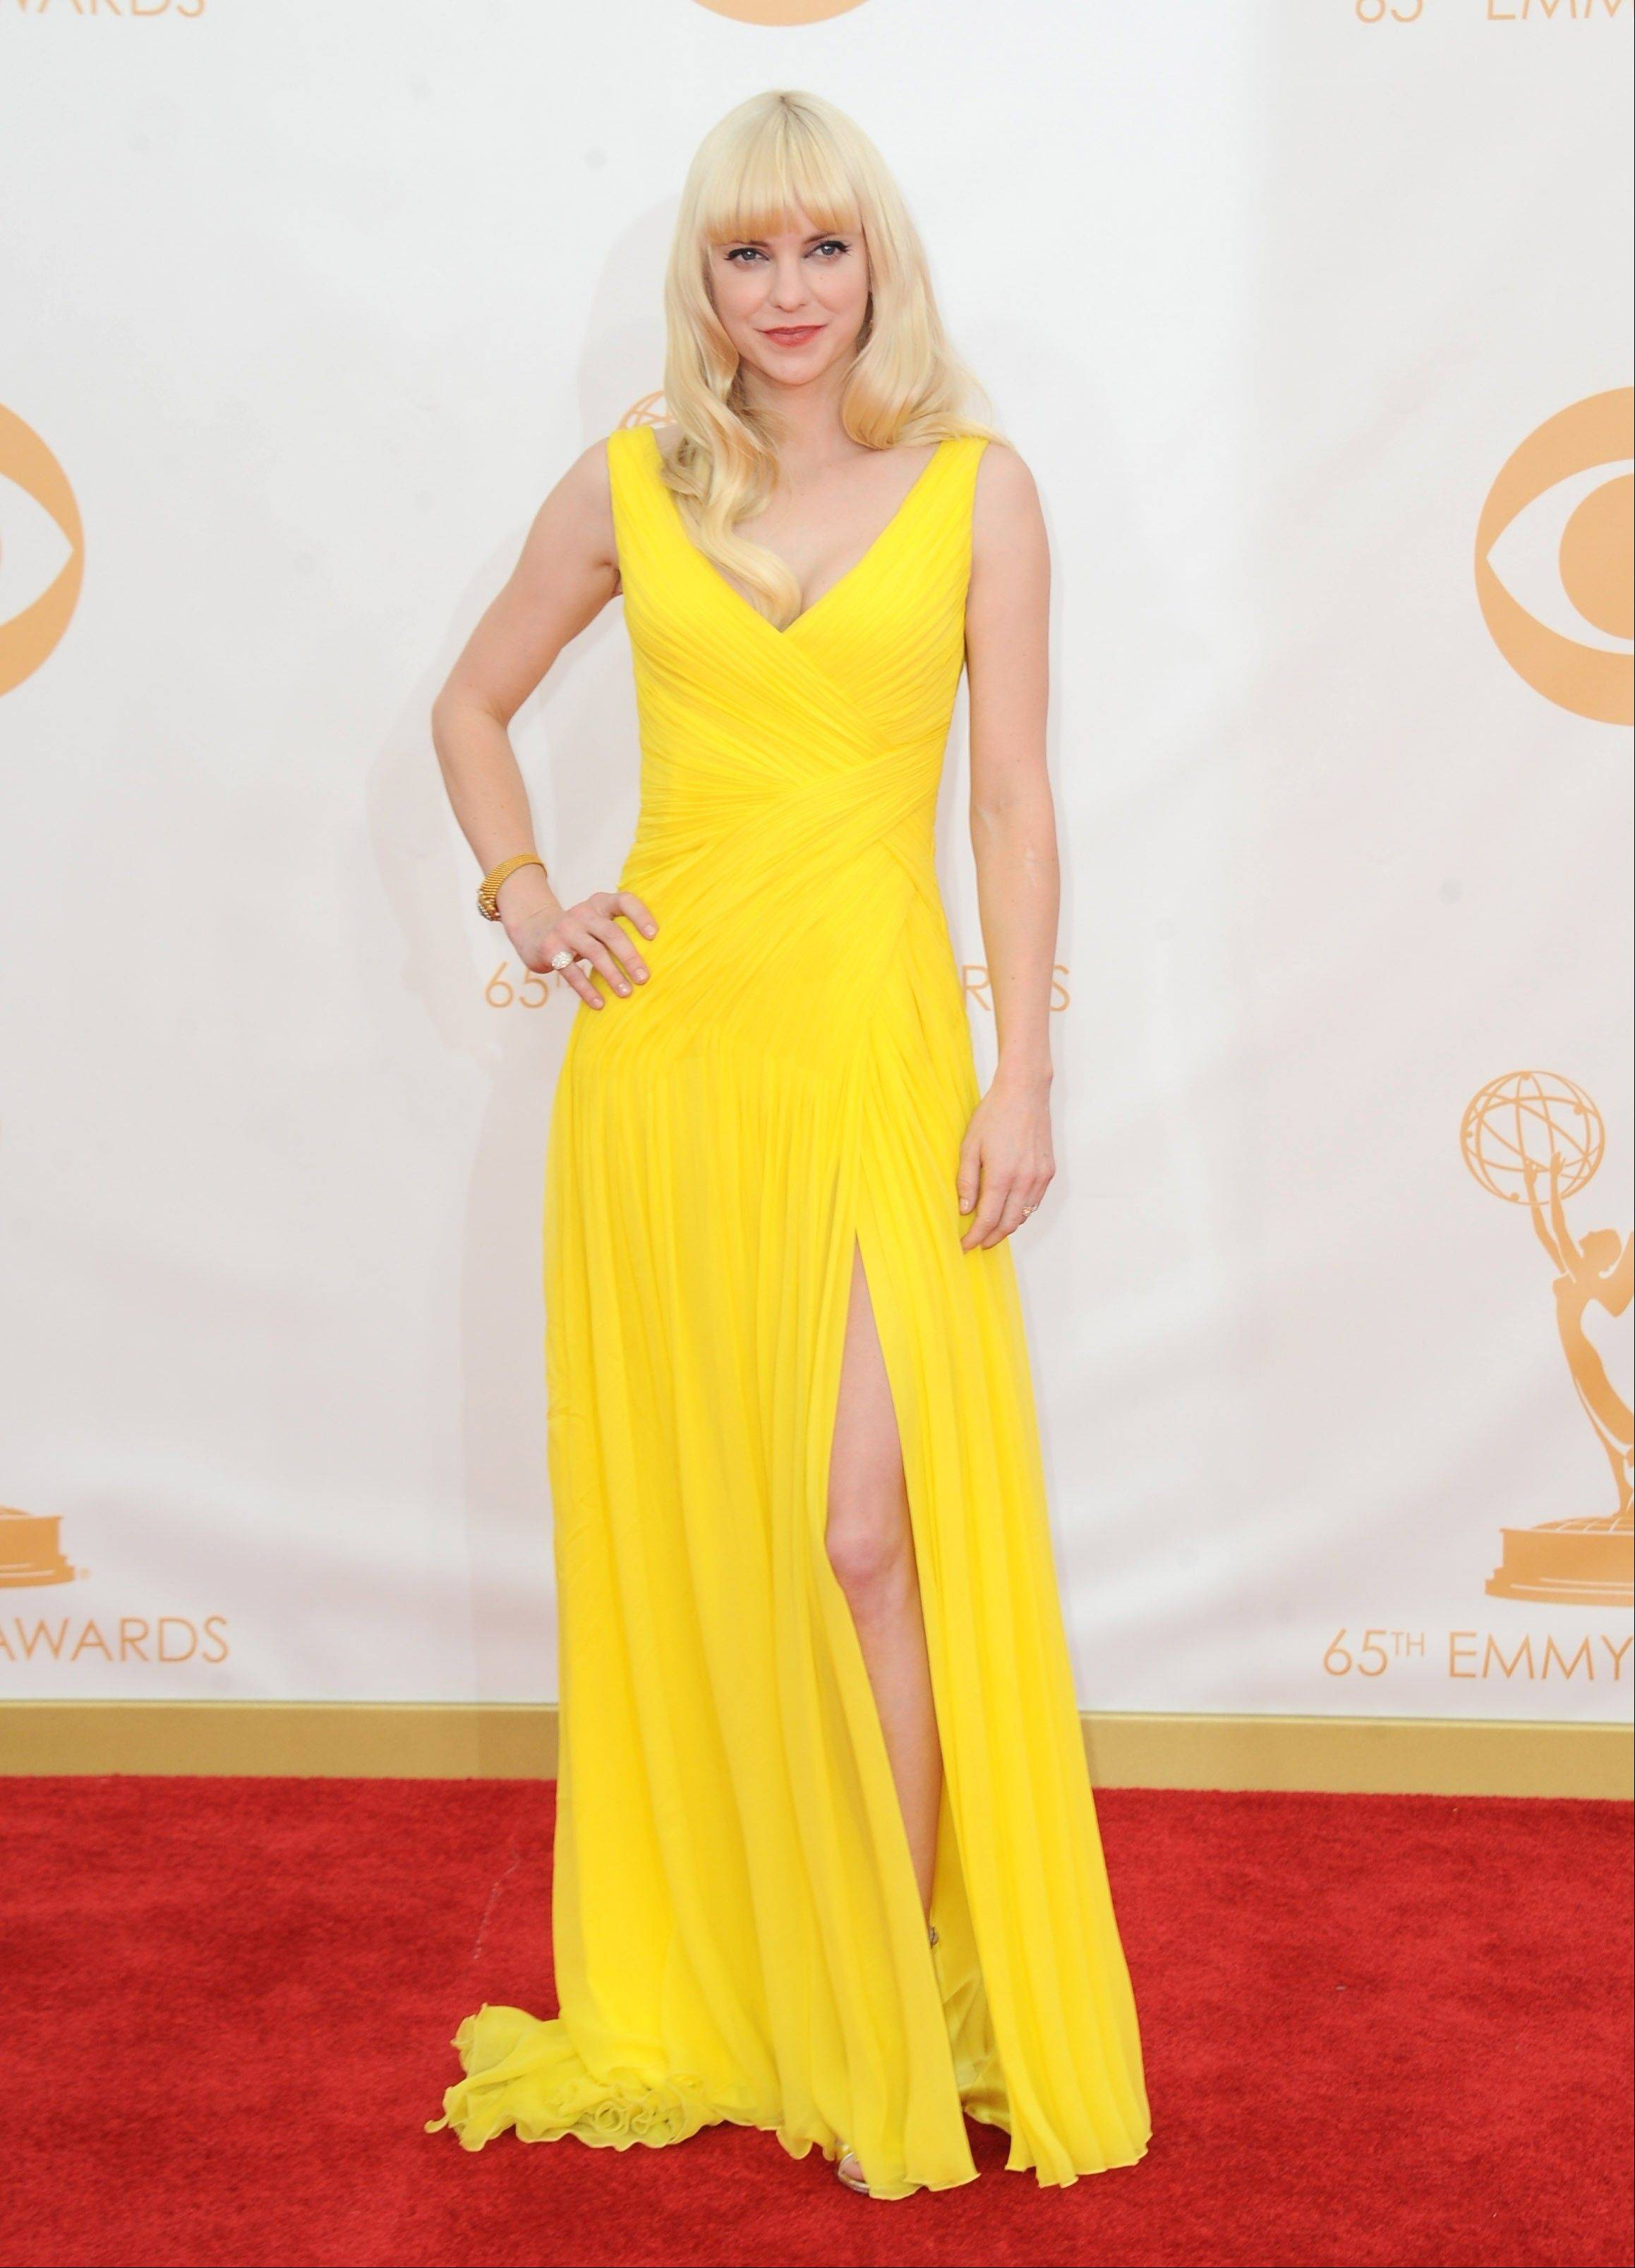 Anna Faris arrives at the 65th Primetime Emmy Awards at Nokia Theatre on Sunday Sept. 22, 2013, in Los Angeles.